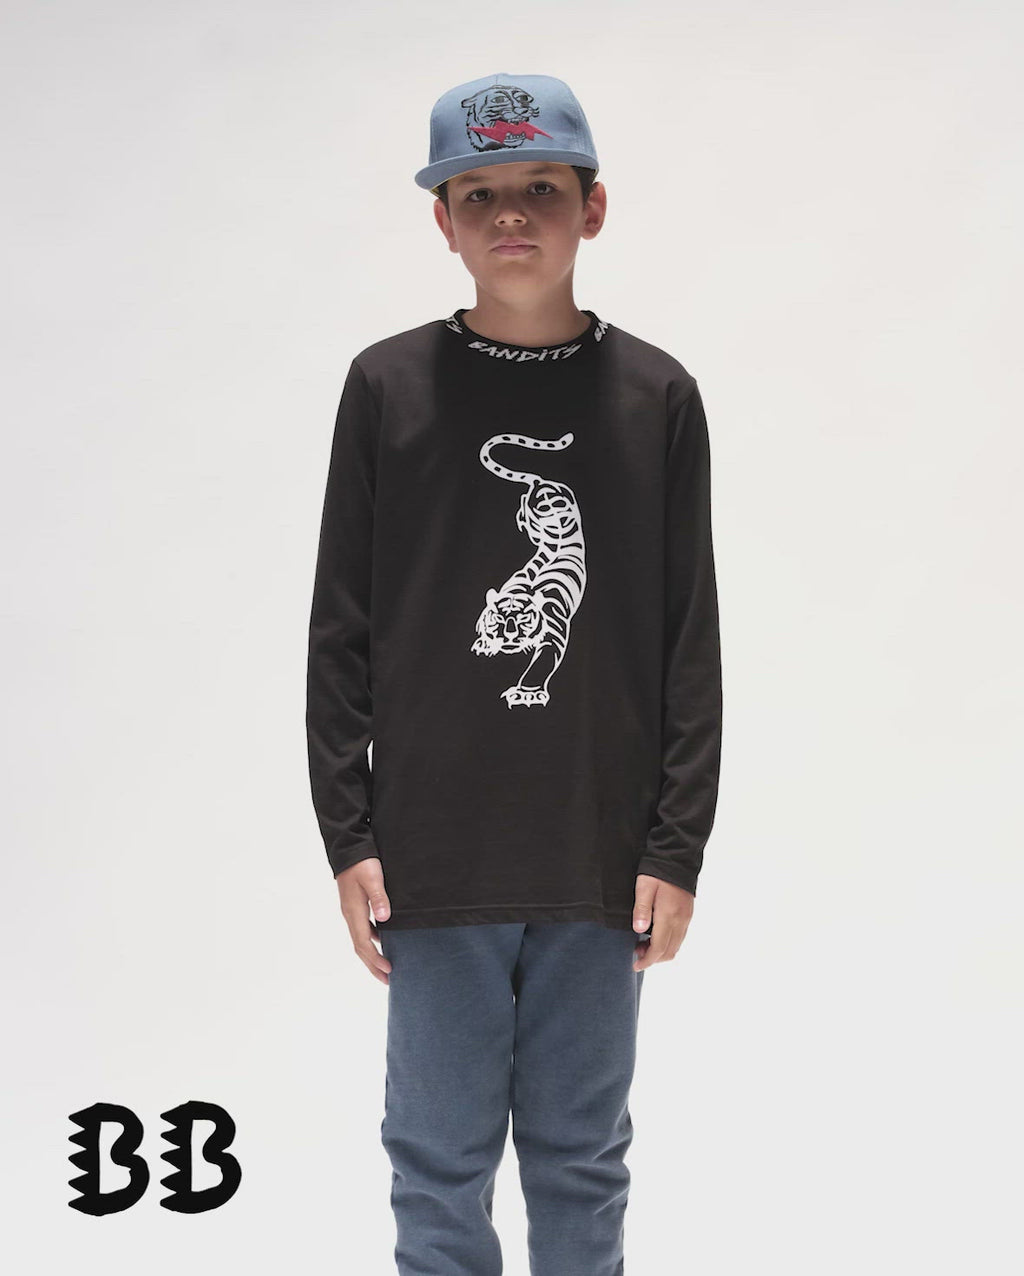 Bandits by Band of Boys Crouching Tiger Black Long Sleeve Straight Hem Tee video. Model also wears Lightning Tiger Blue Cap and blue Vintage Trackies